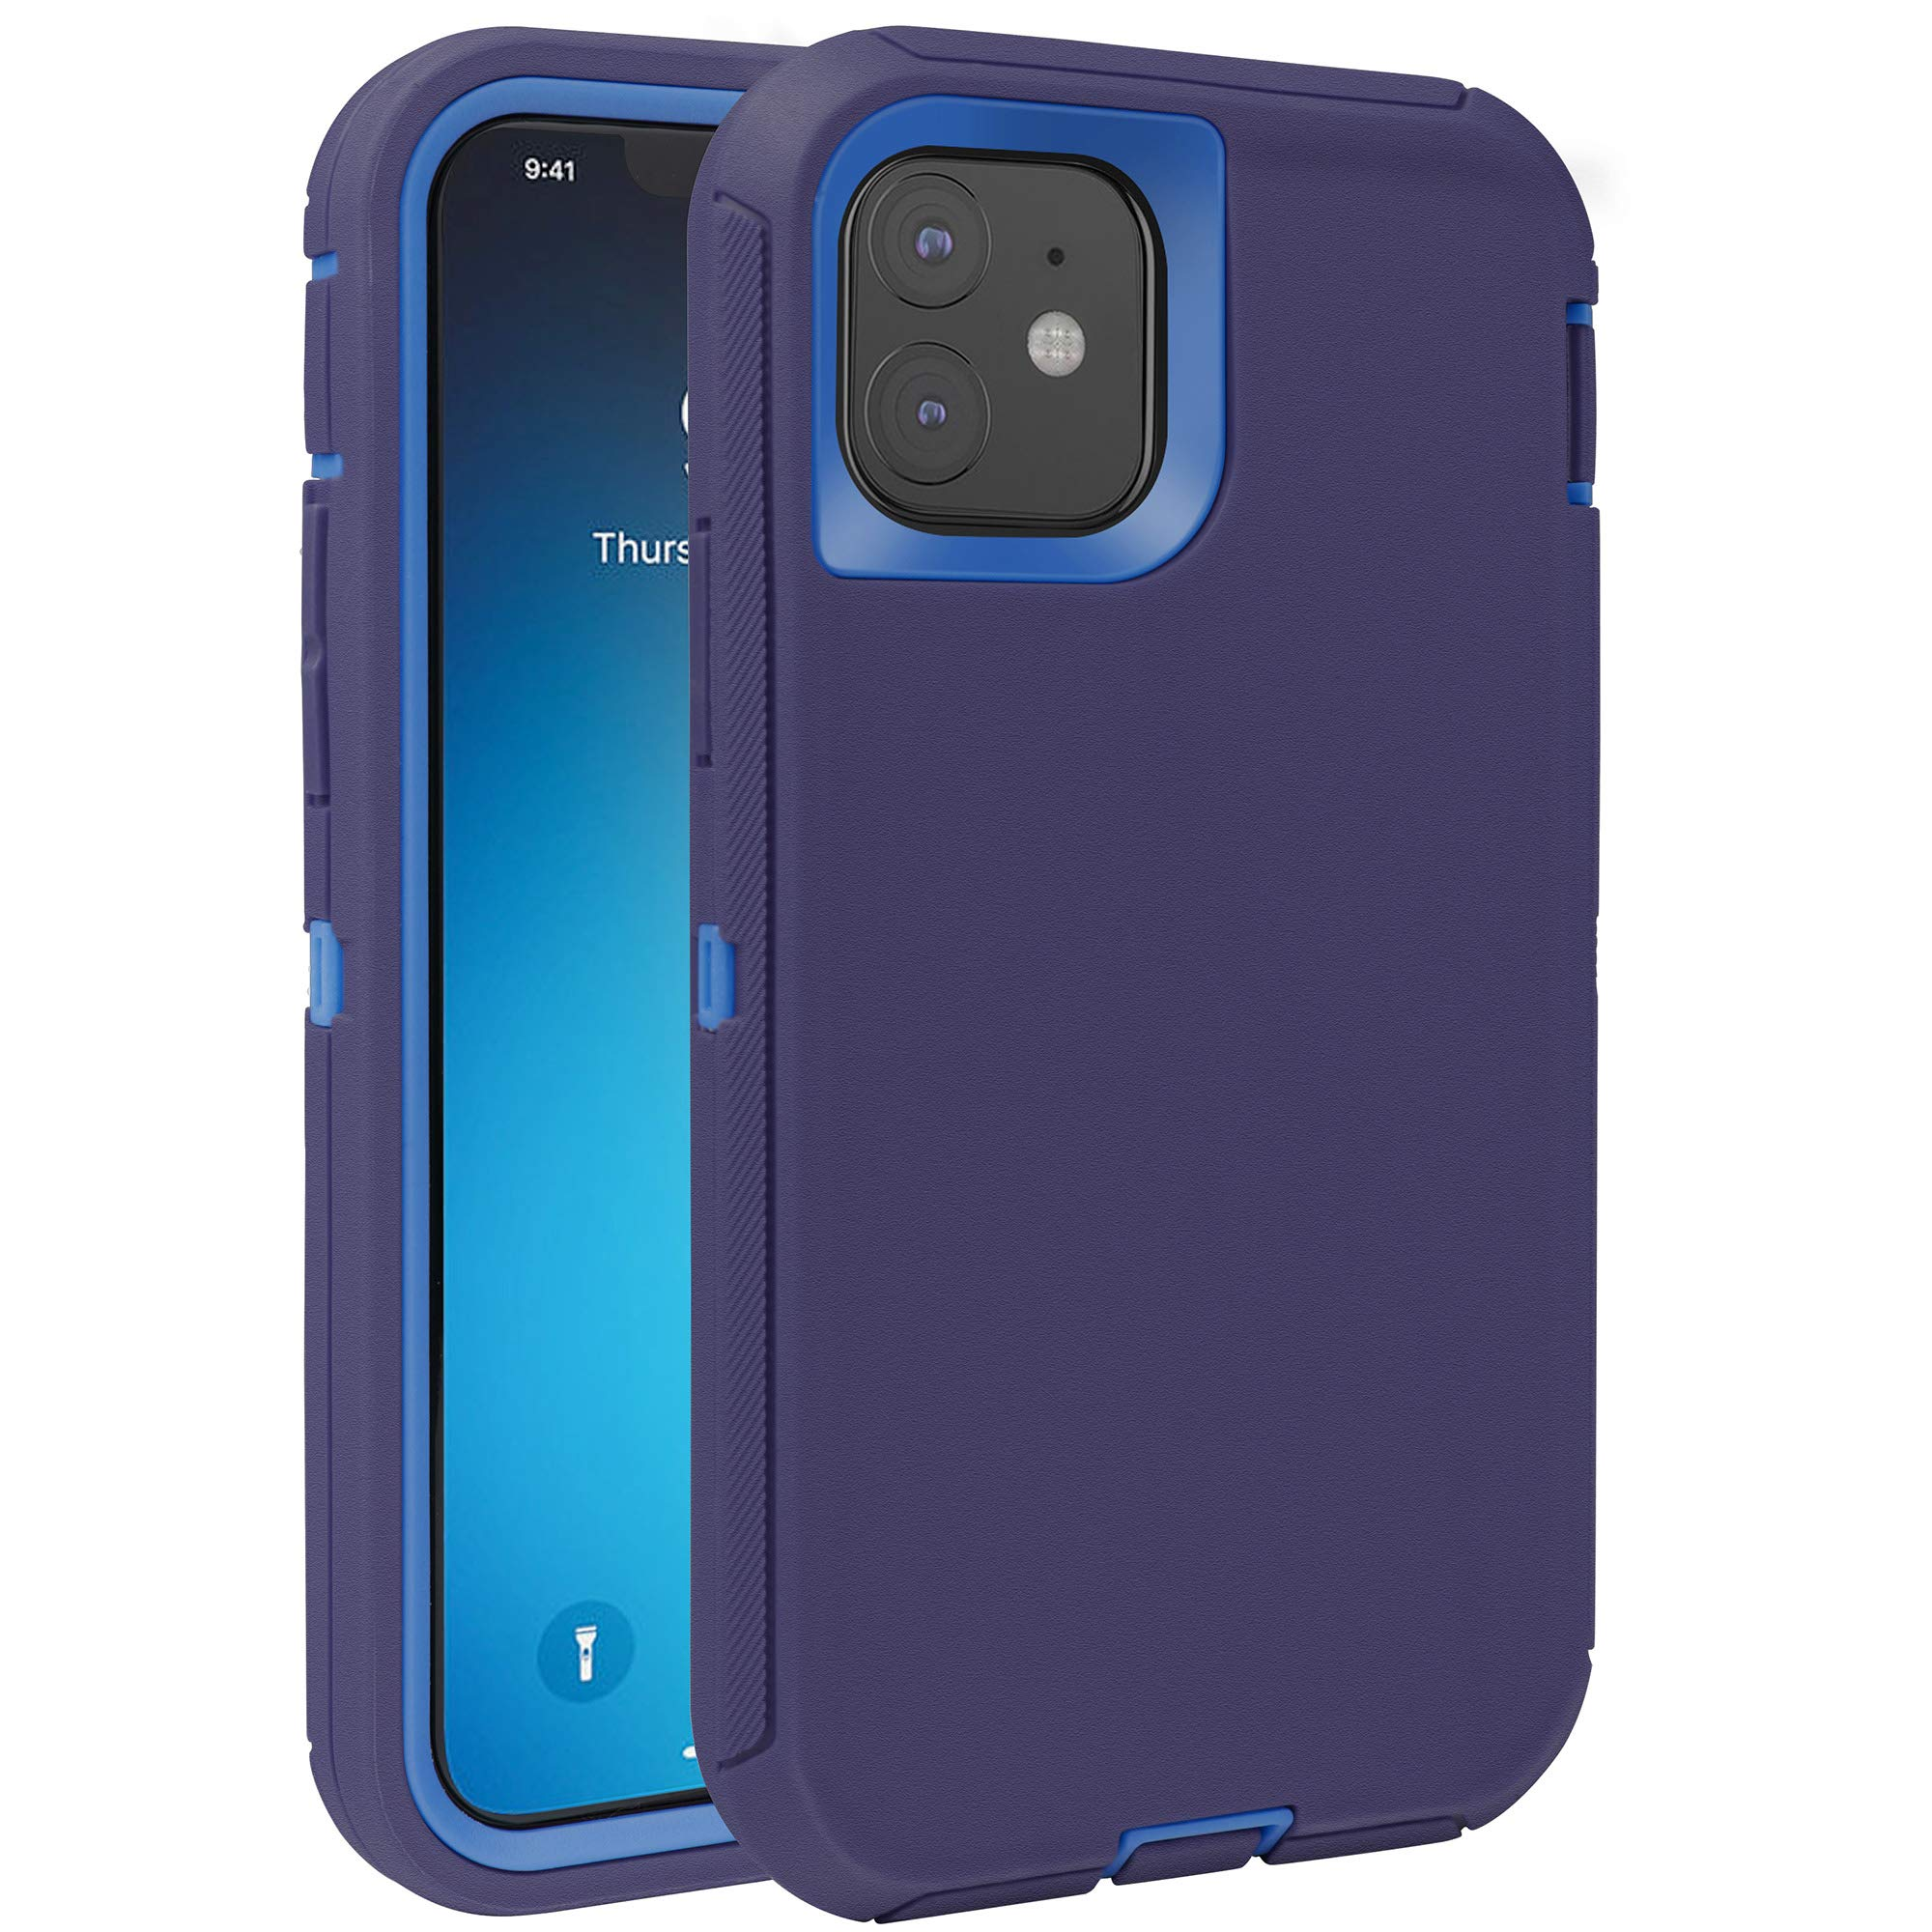 FOGEEK Case for iPhone 11, Heavy Duty Rugged Case, Full Body Protective Cover [Shockproof] Compatible for iPhone 11 2019 [6.1 inch] (Dark Blue)